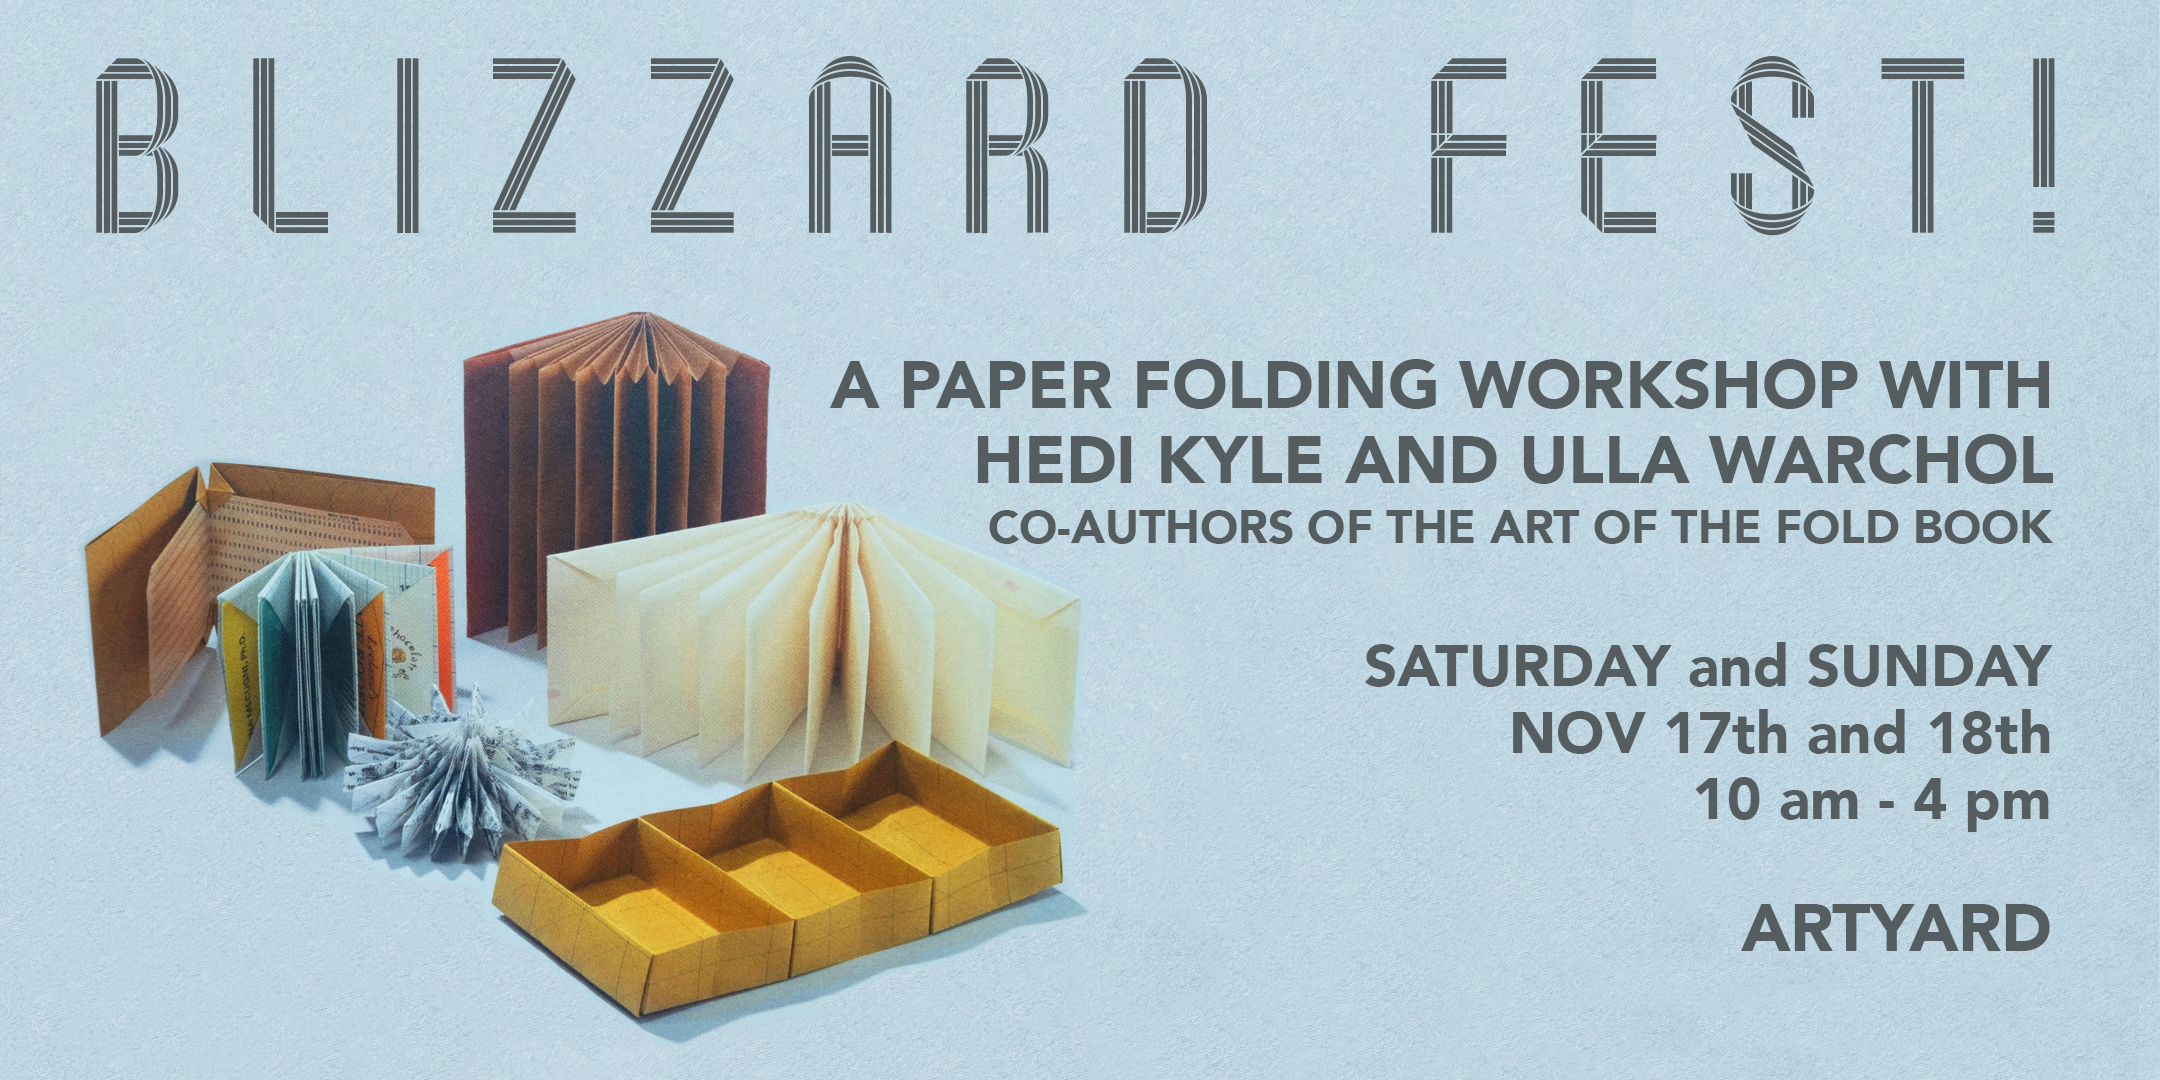 Paper Folding Workshop with Hedi Kyle and Ulla Warchol @ ArtYard's Theater | Frenchtown | New Jersey | United States